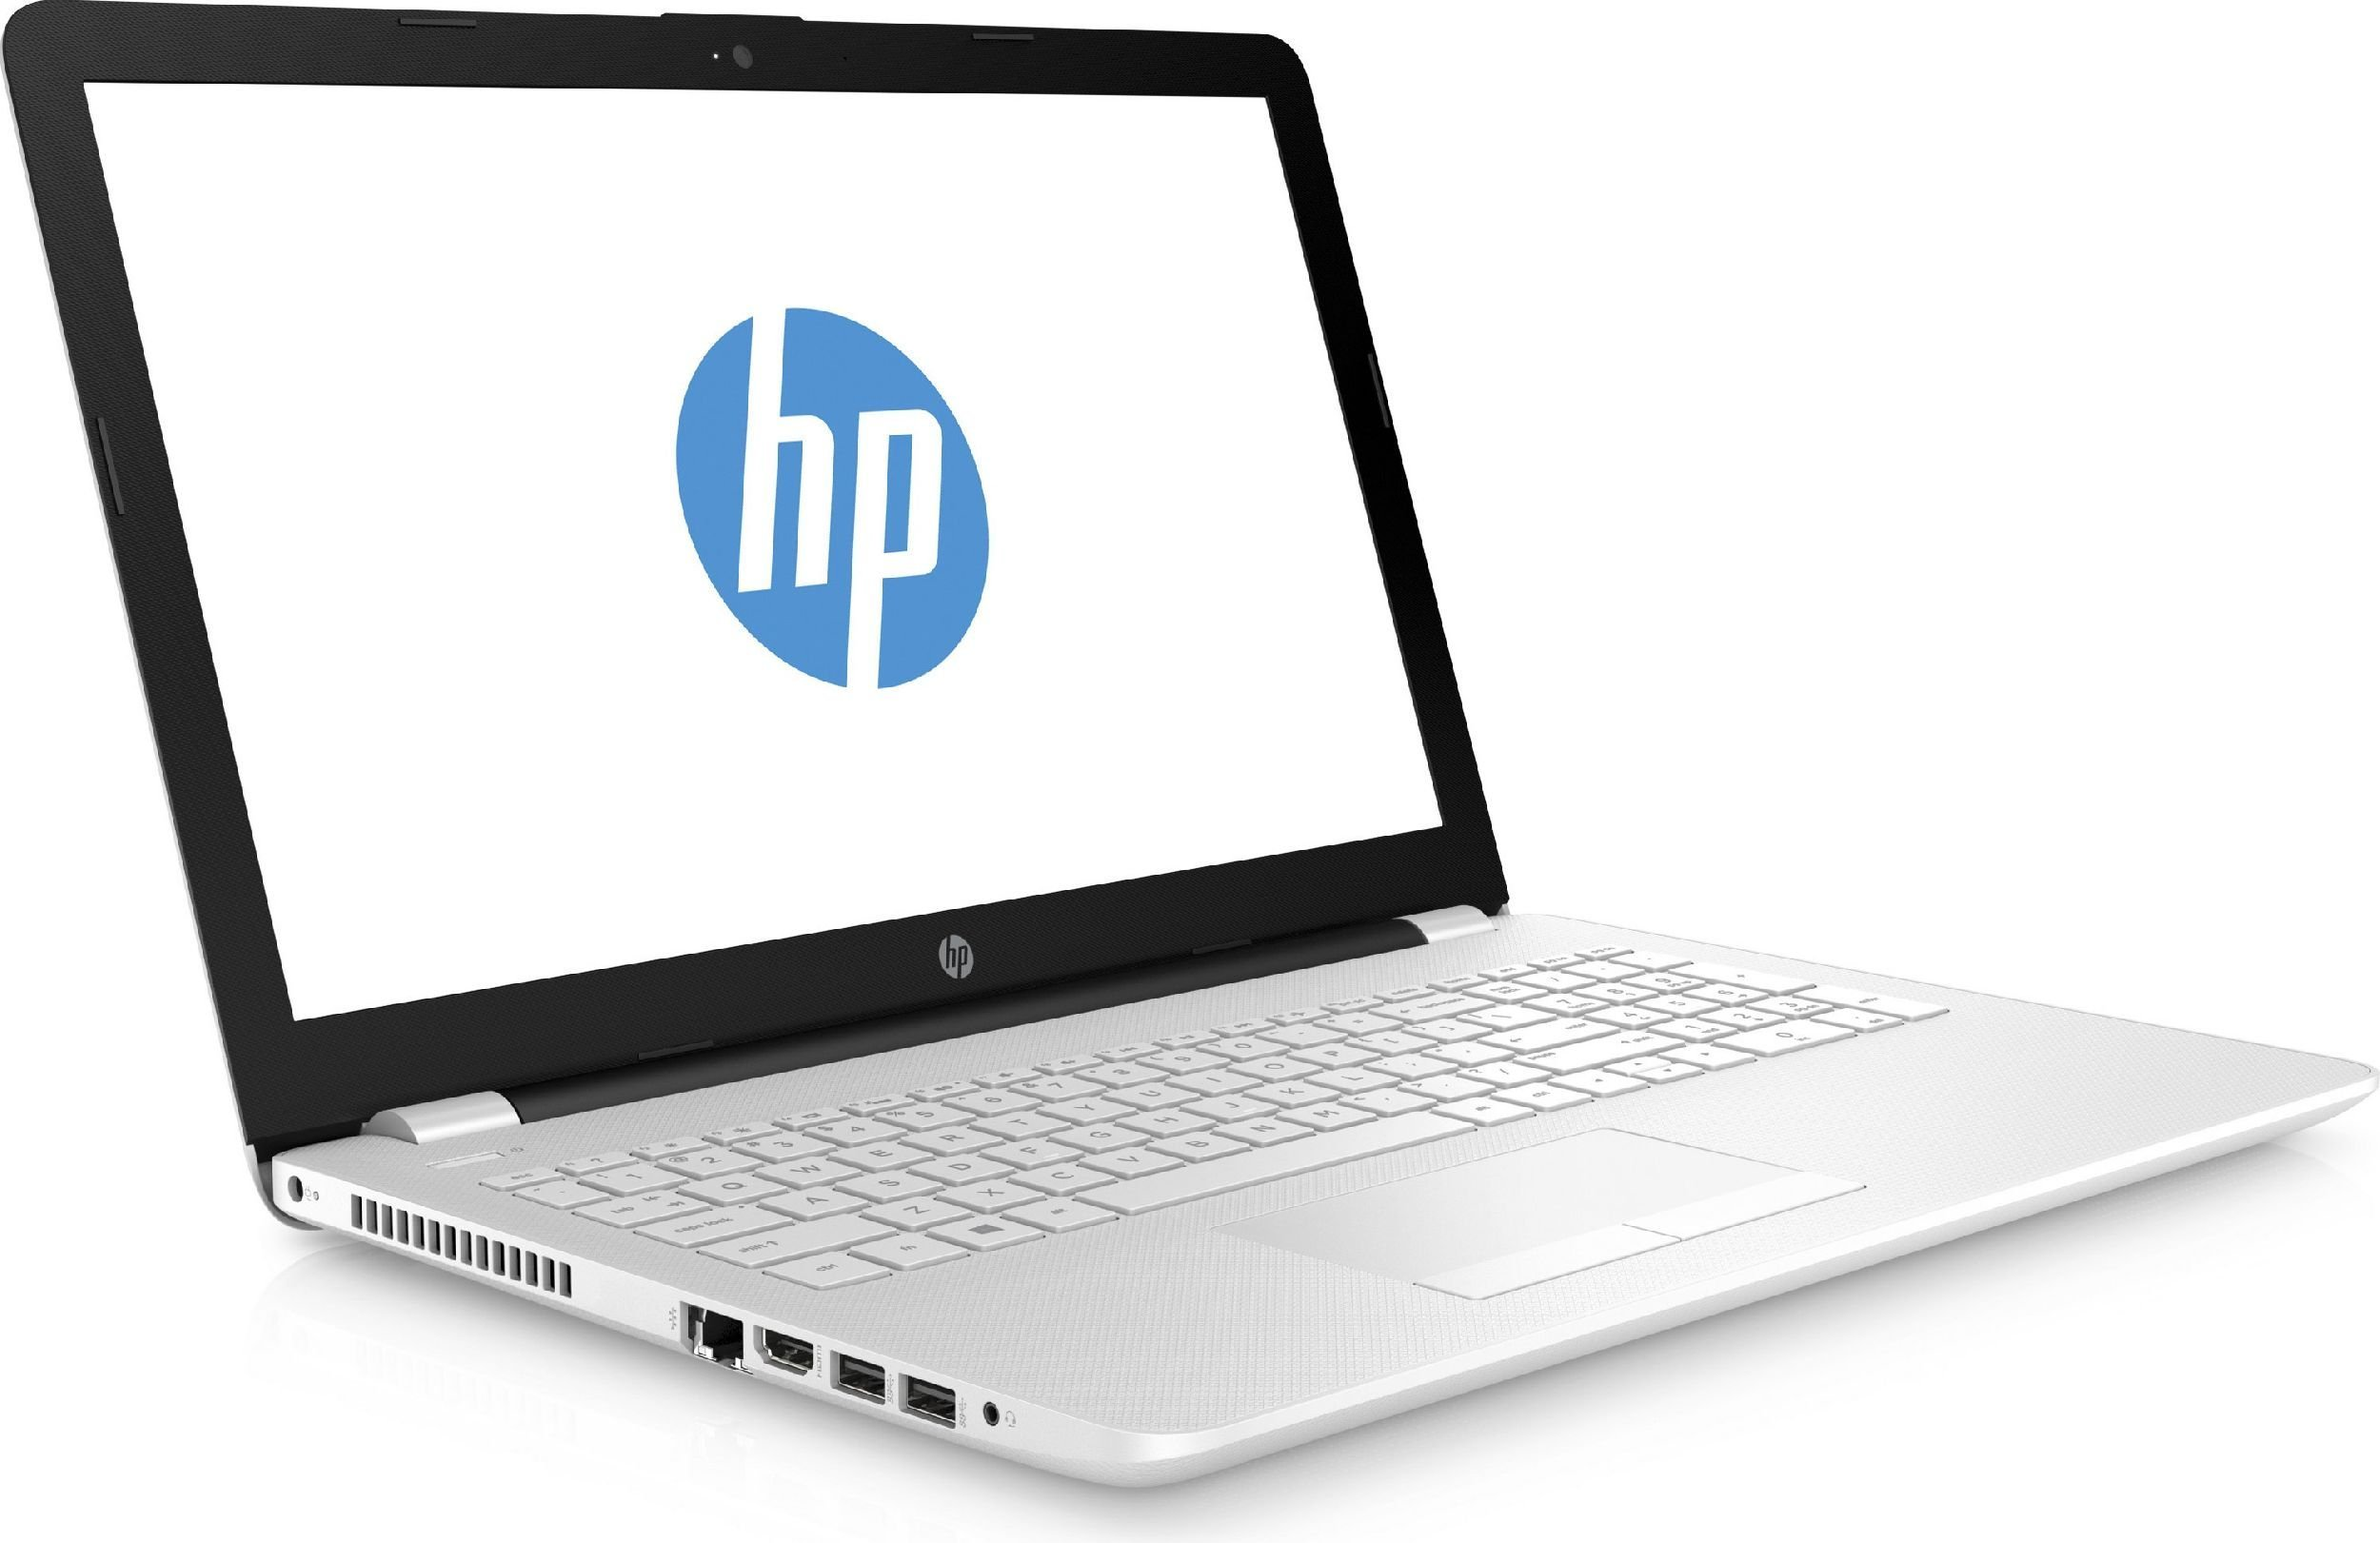 HP 15-BS150SA/UK 8 GB RAM/ 240 GB SSD/ Win10H